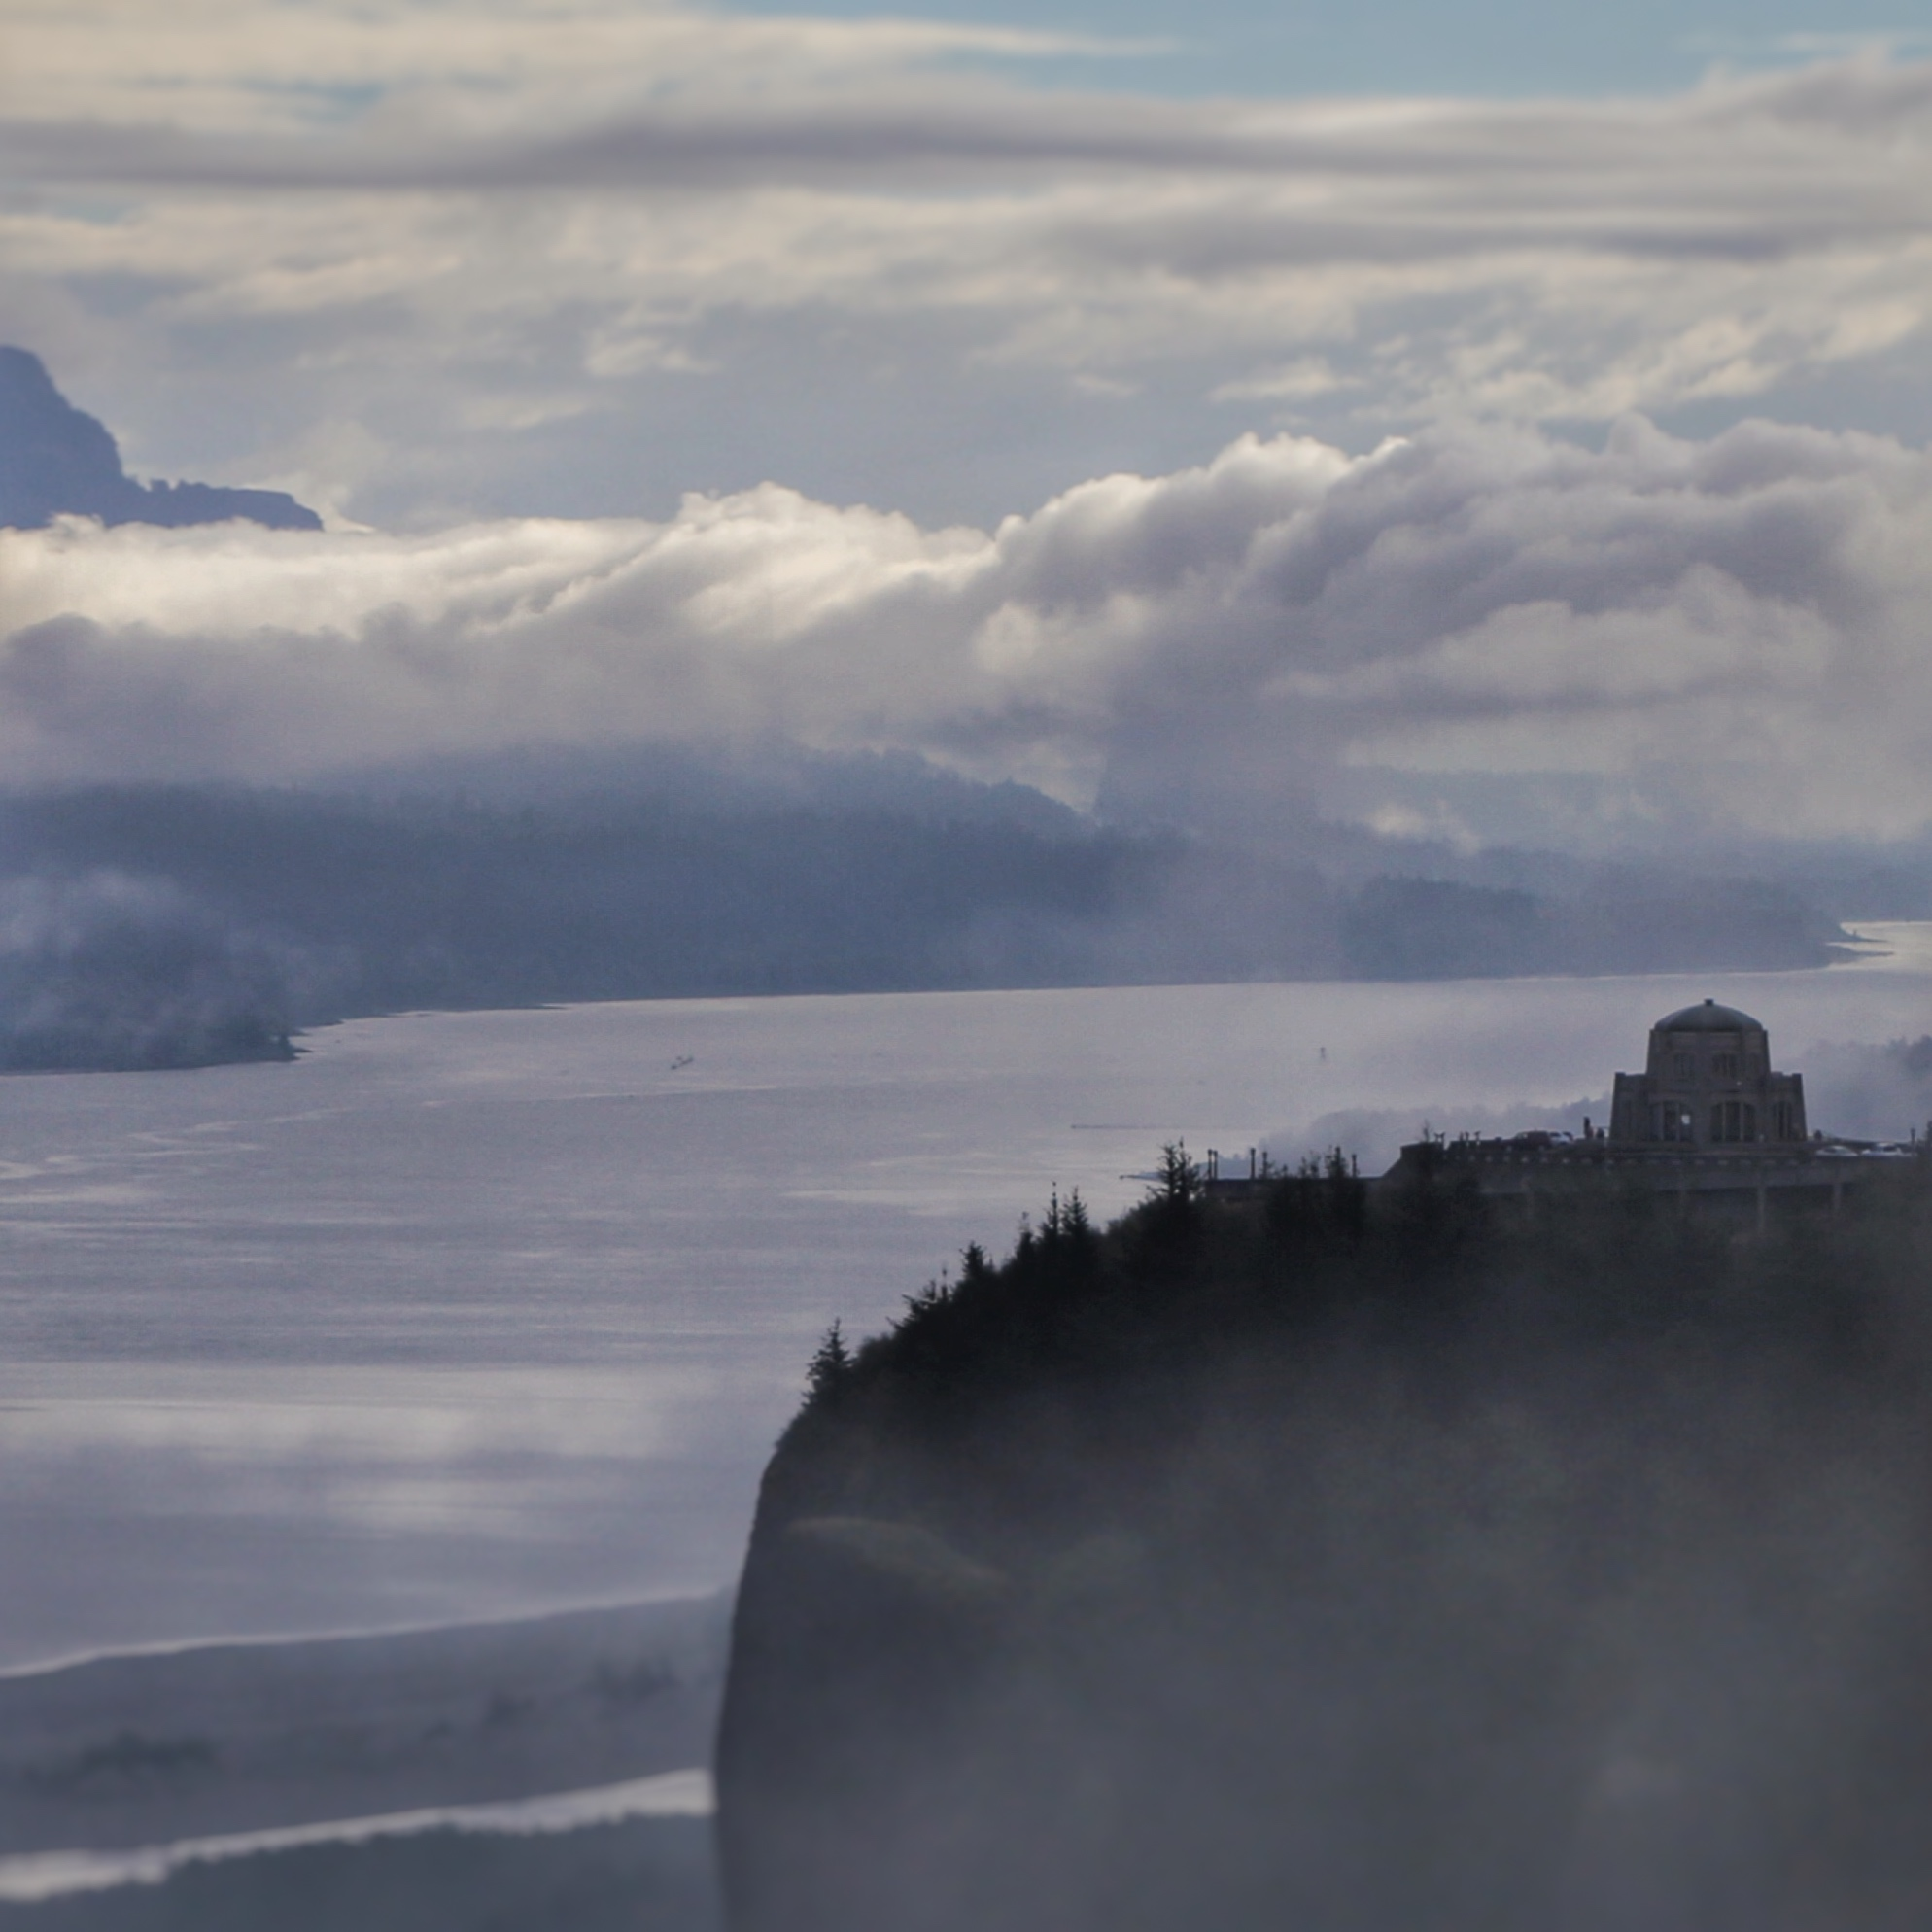 Vista House at Crown Point, as seen from the Portland Women's Forum Viewpoint